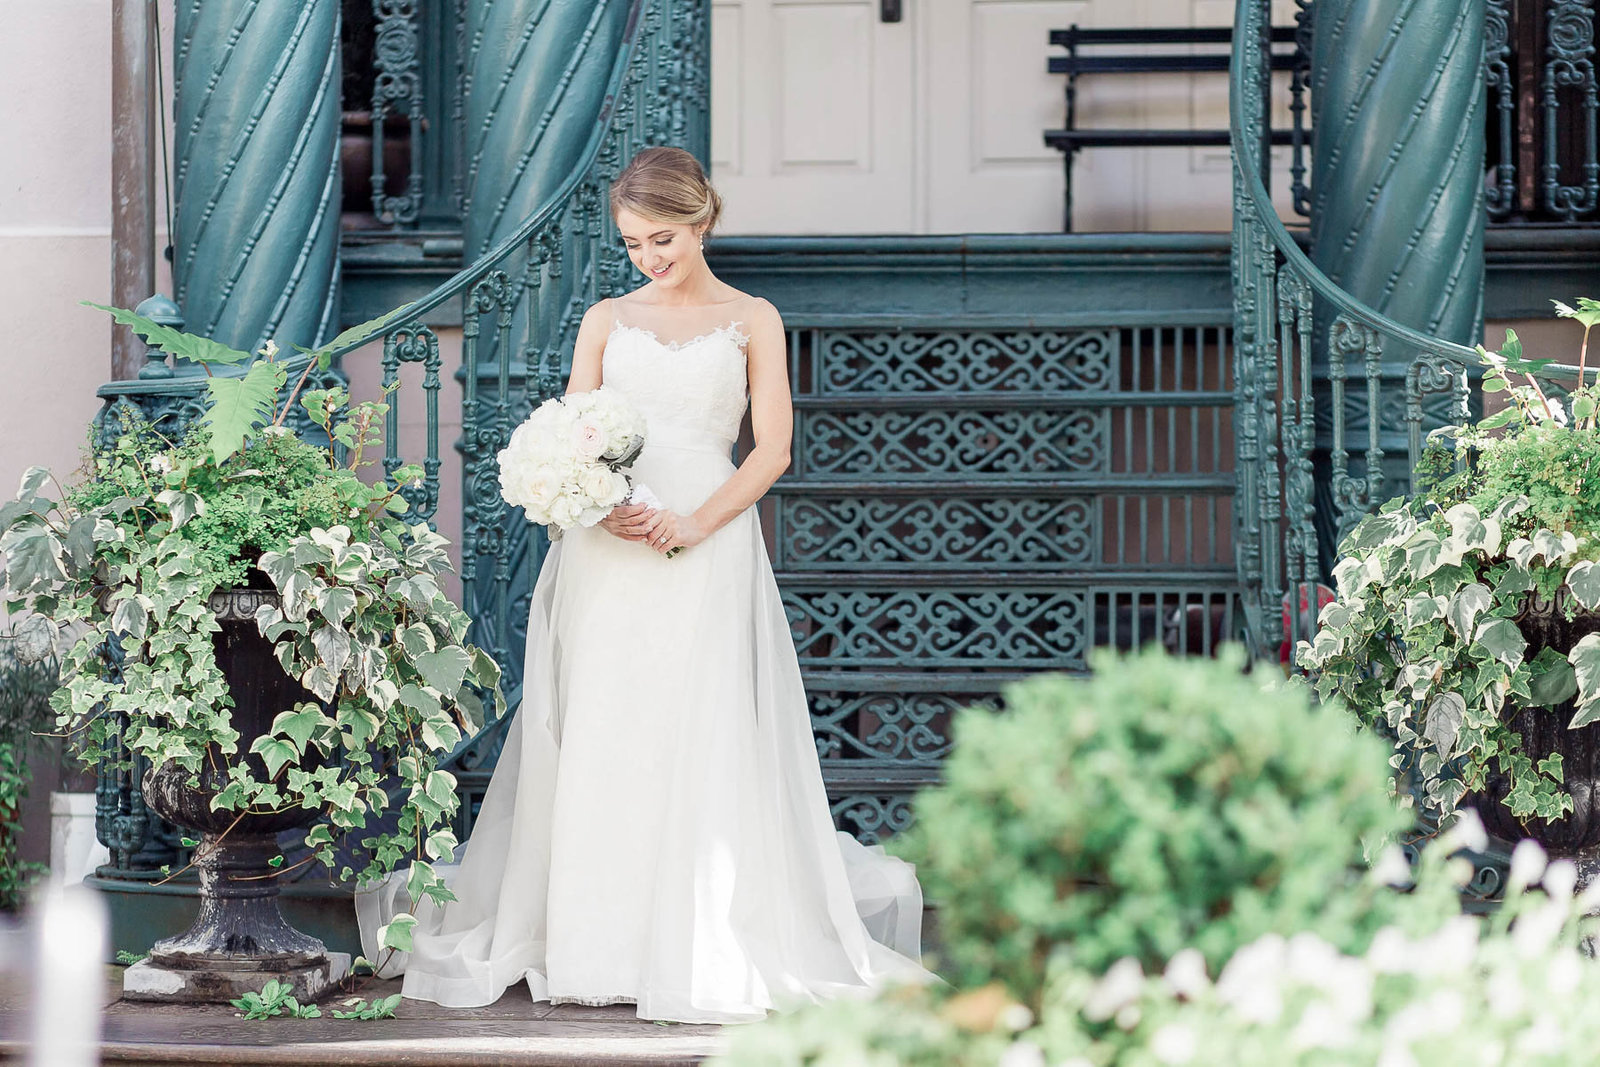 Bride poses on ornate staircase, John Rutledge House Inn, Charleston Wedding Photography.